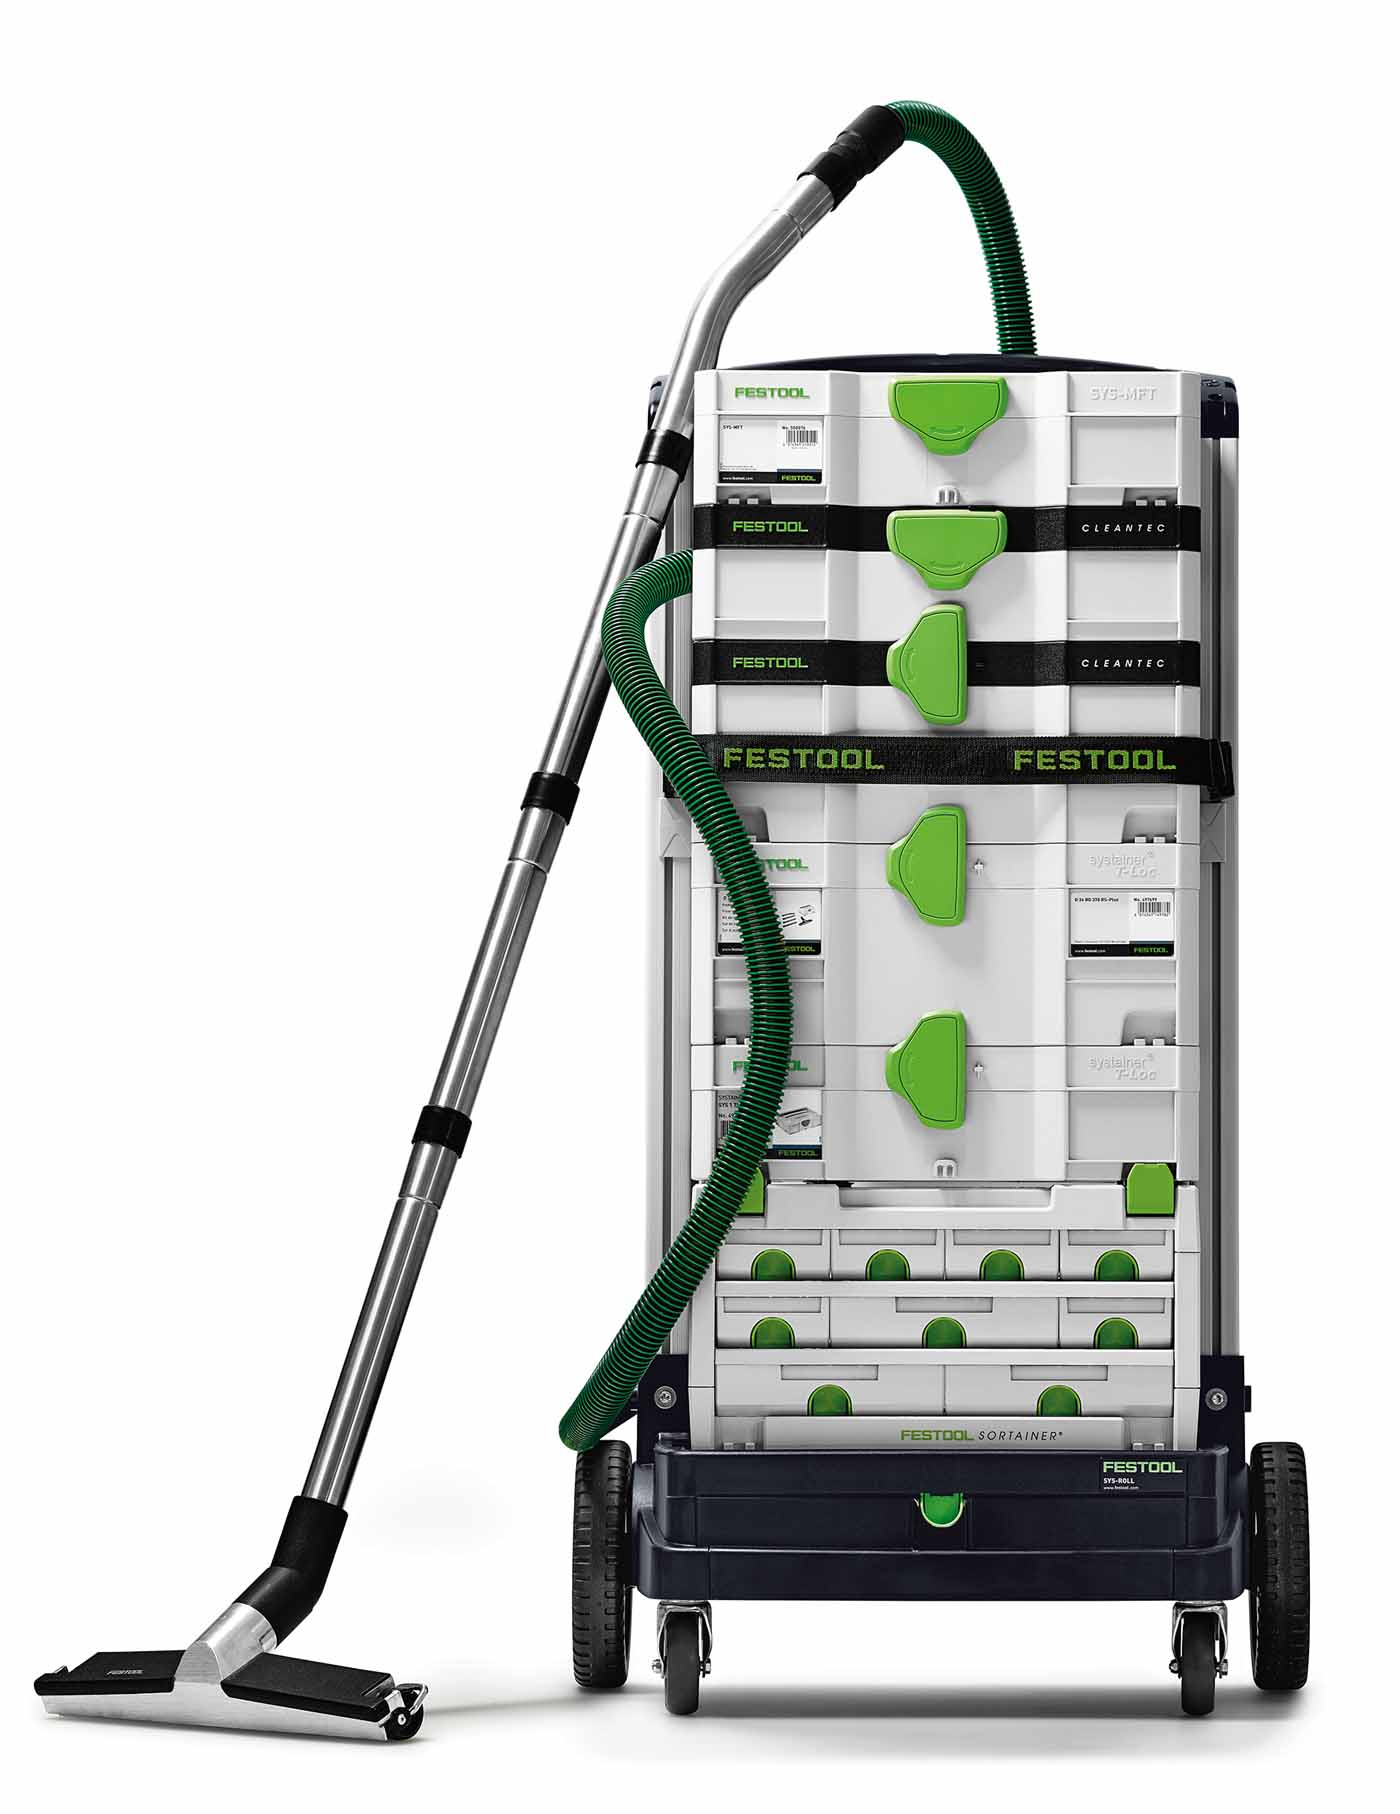 festool staubsauger im systainer absaugmobil ctl sys. Black Bedroom Furniture Sets. Home Design Ideas